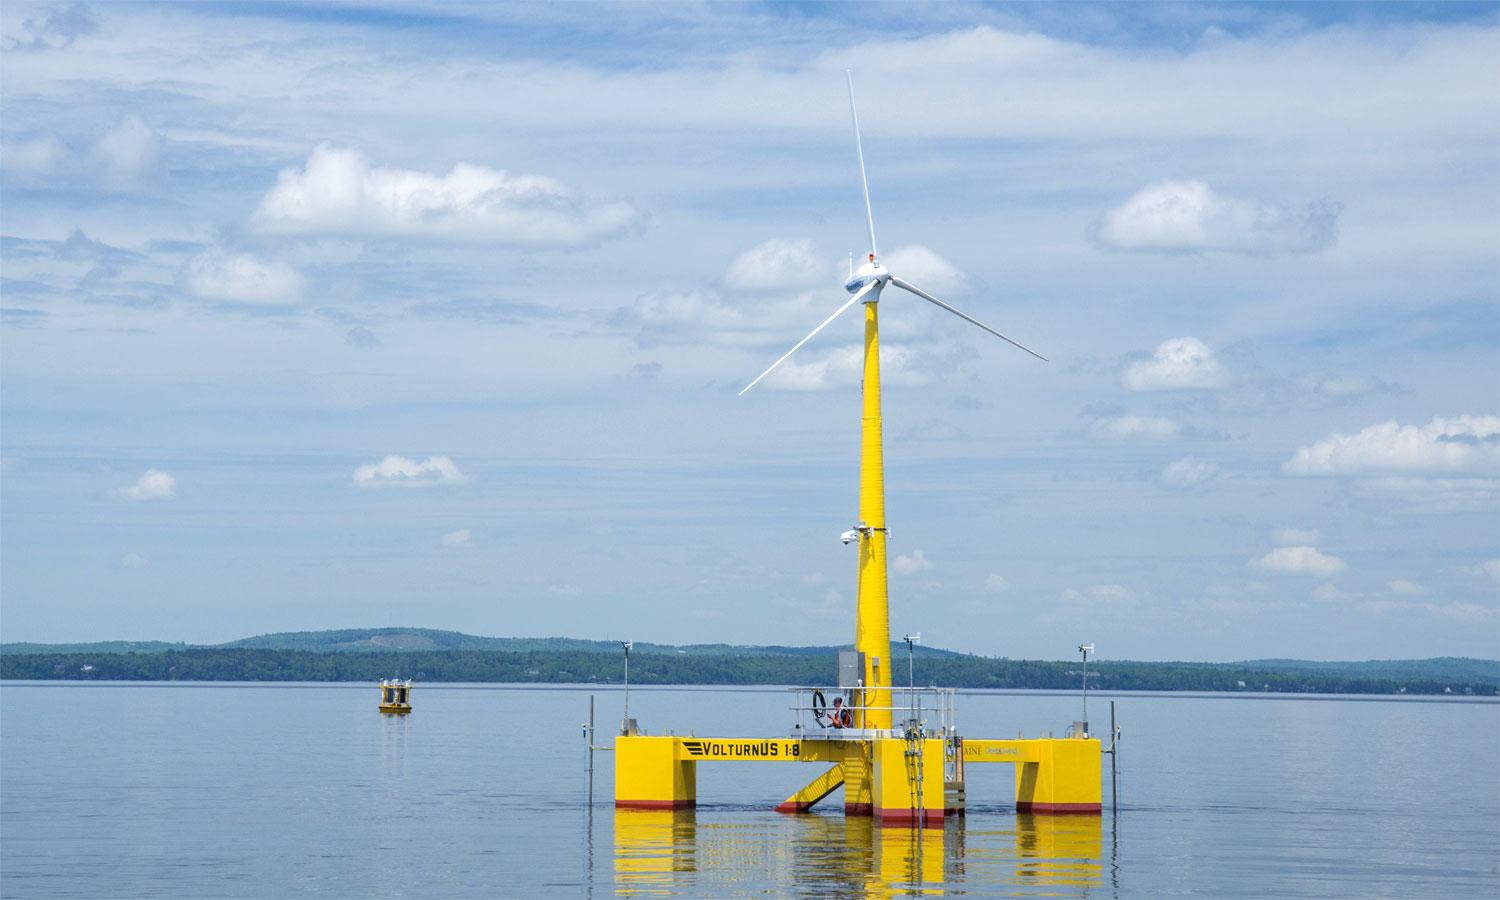 An offshore wind turbine off the coast of Maine